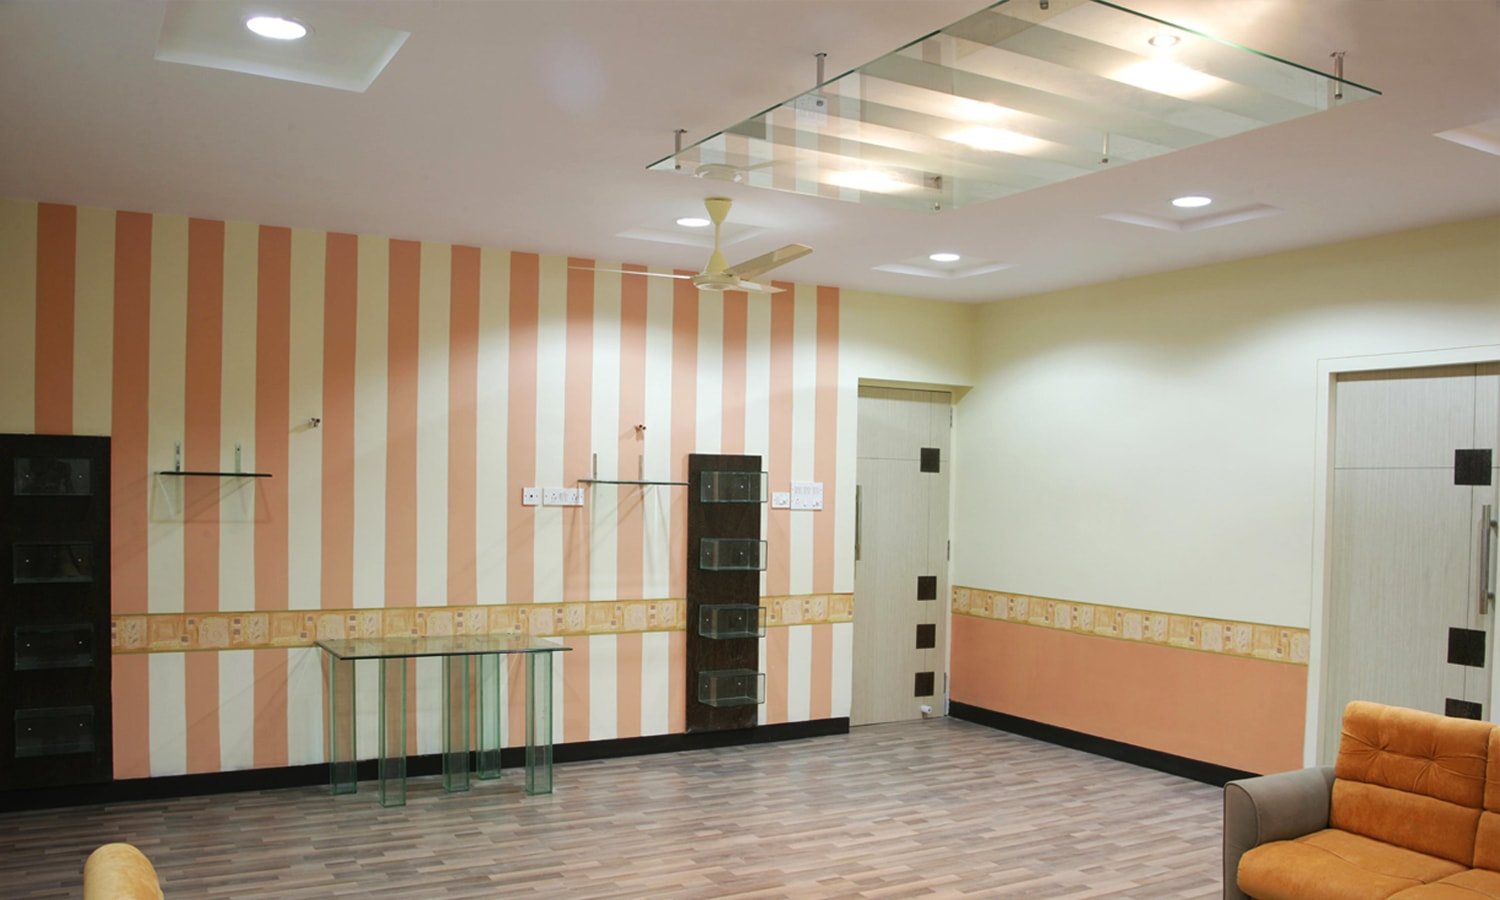 Interiors of Recreation Center-IOB Chennai